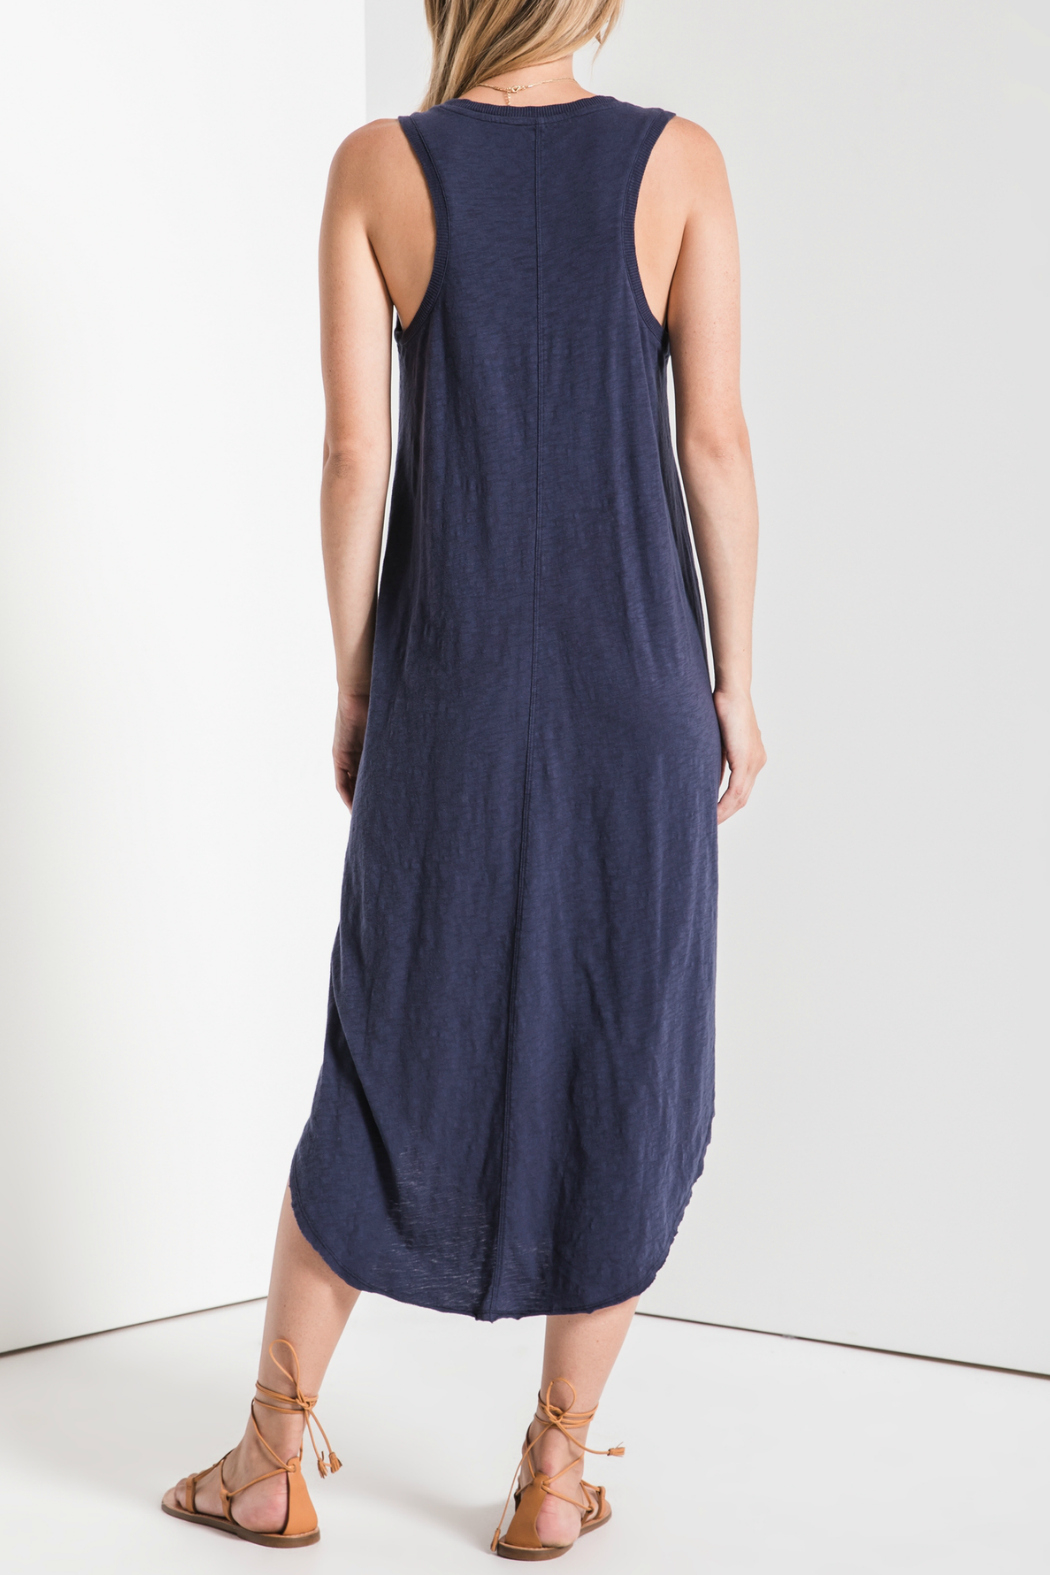 z supply The Reverie Maxi Dress - Side Cropped Image